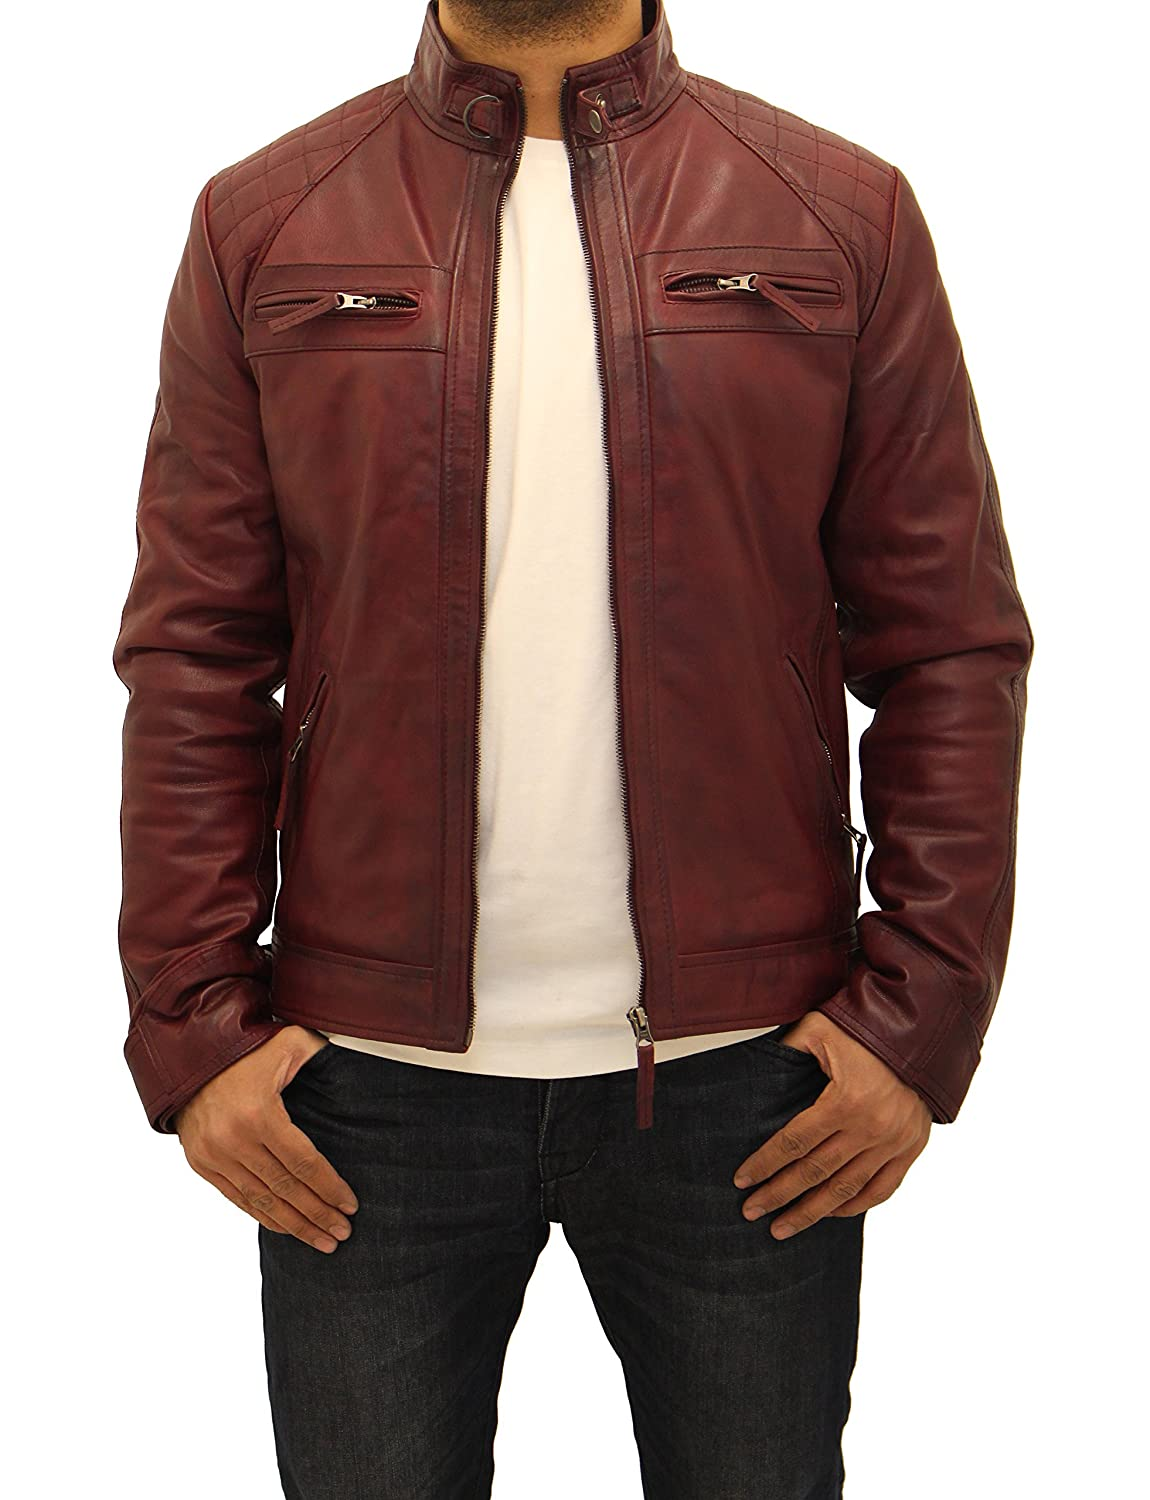 Mens Burgundy Vintage 100%Leather Quilted Smart Fitted Retro Zipped Biker Jacket